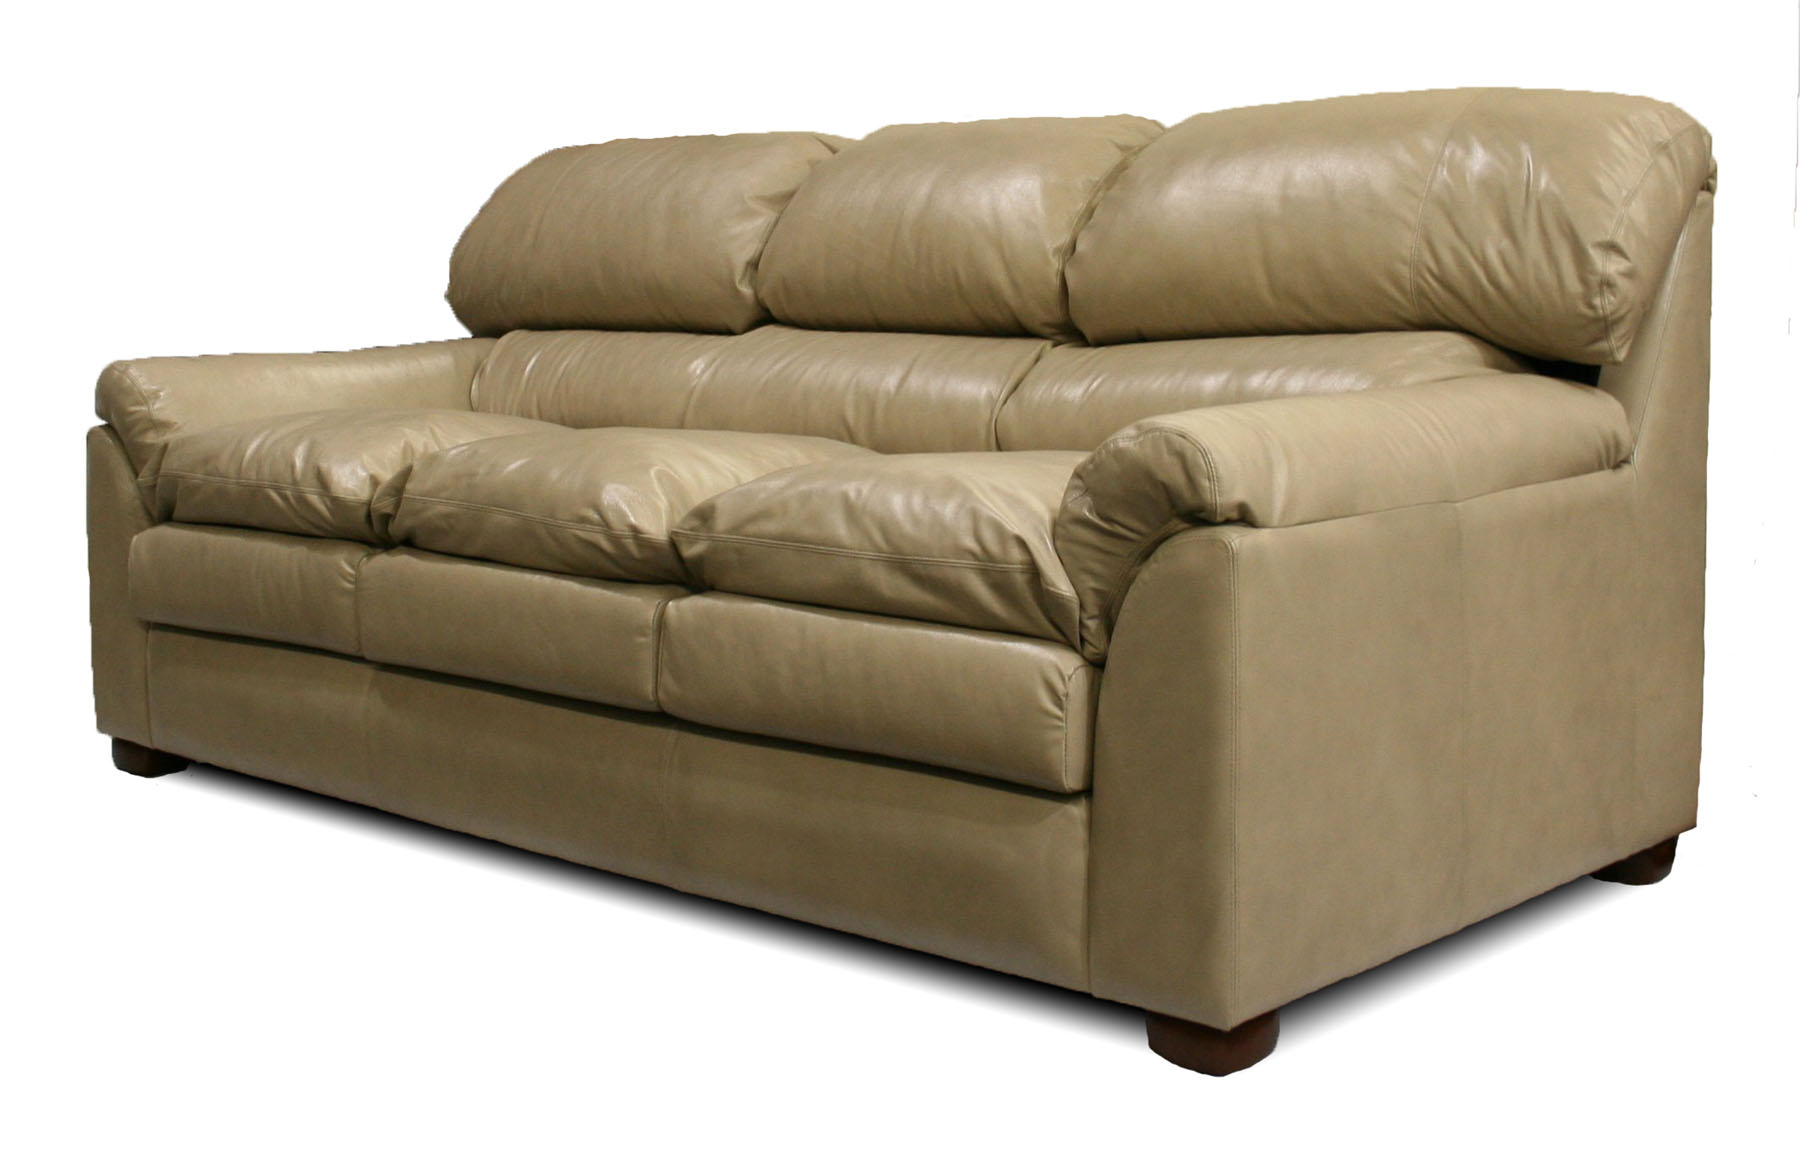 deep leather sectional sofa half circle grand canyon  furniture